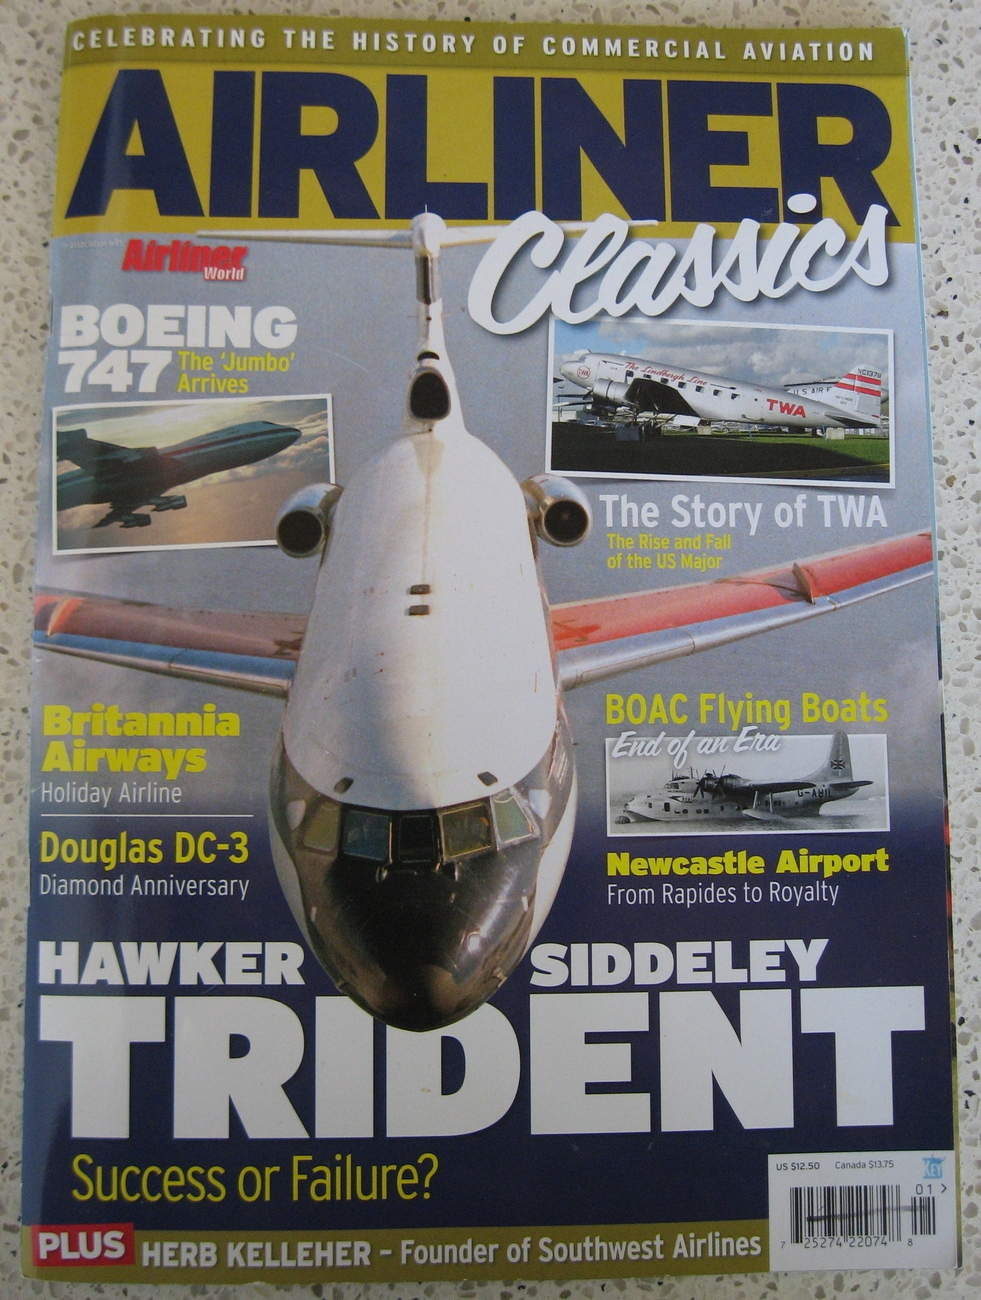 Airliner Classics Volume 2 Magazine Airliner 2010 World Boeing 747 Story of TWA